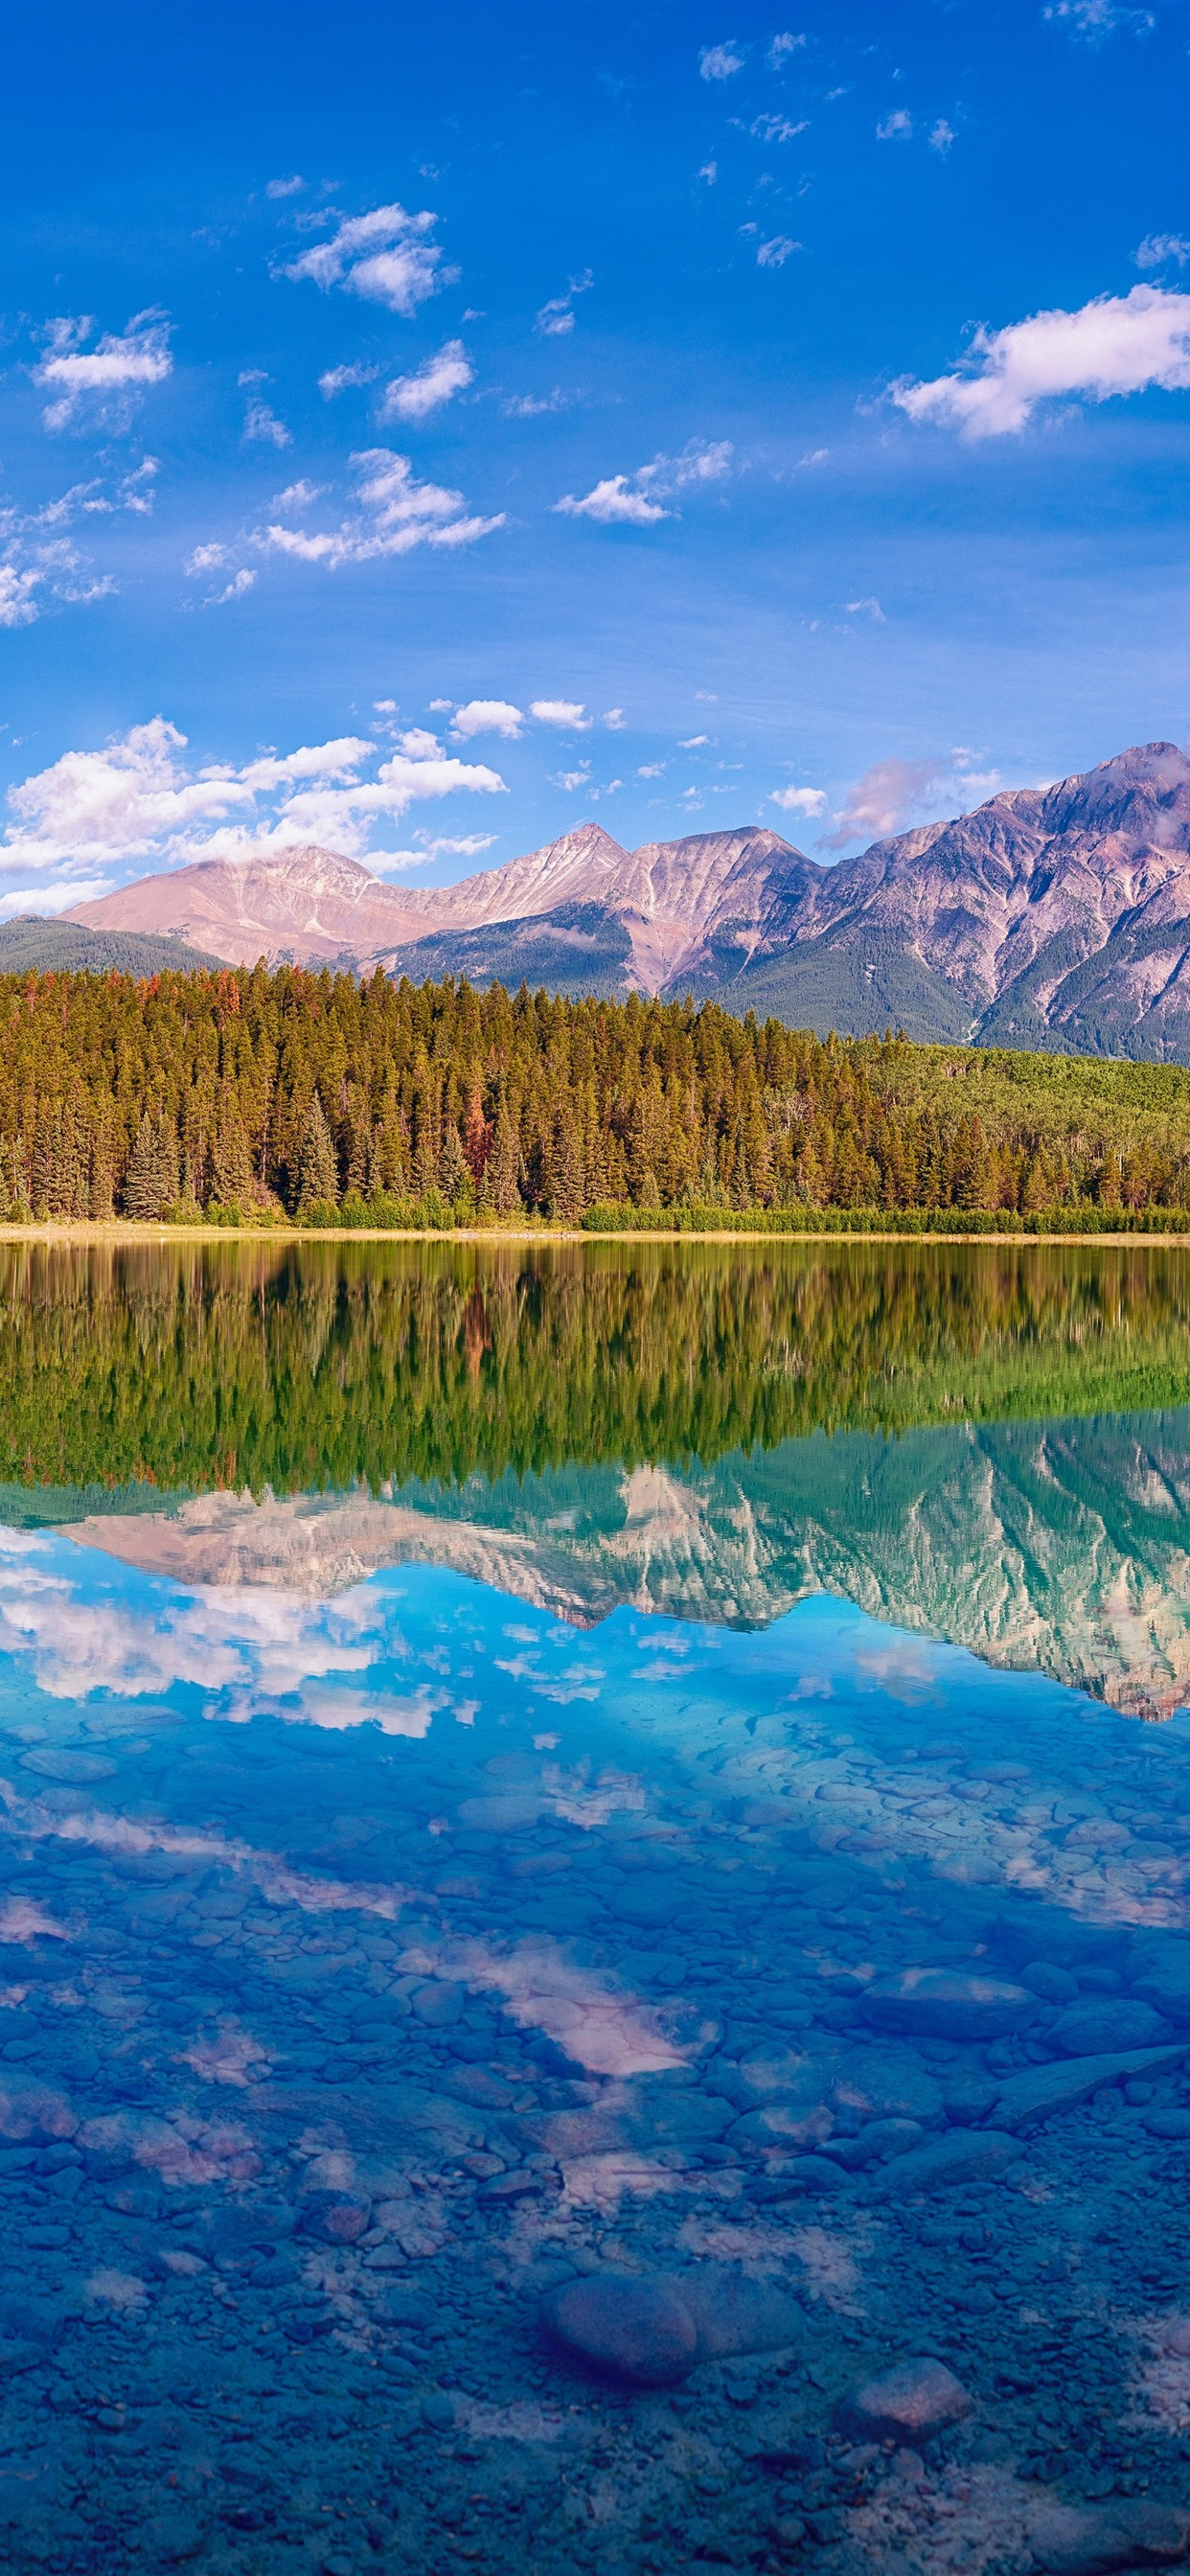 Beautiful Nature Landscape Lake Mountains Trees Water Reflection Canada 1242x2688 Iphone 11 Pro Xs Max Wallpaper Background Picture Image